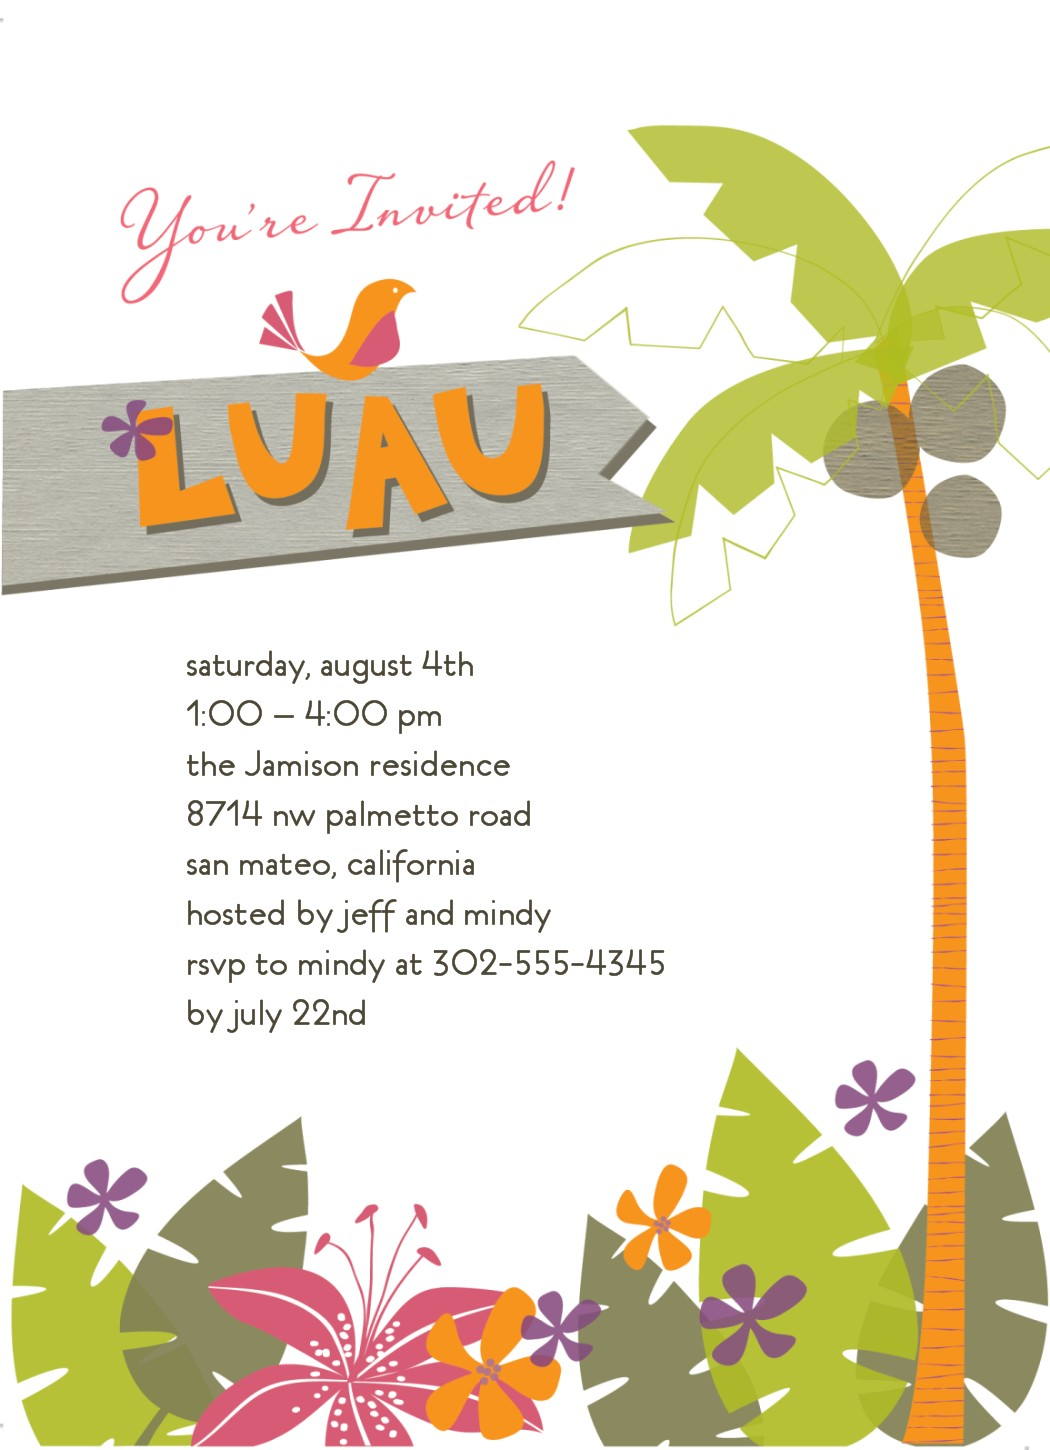 Luau Invitations Clipart - Clipart Kid